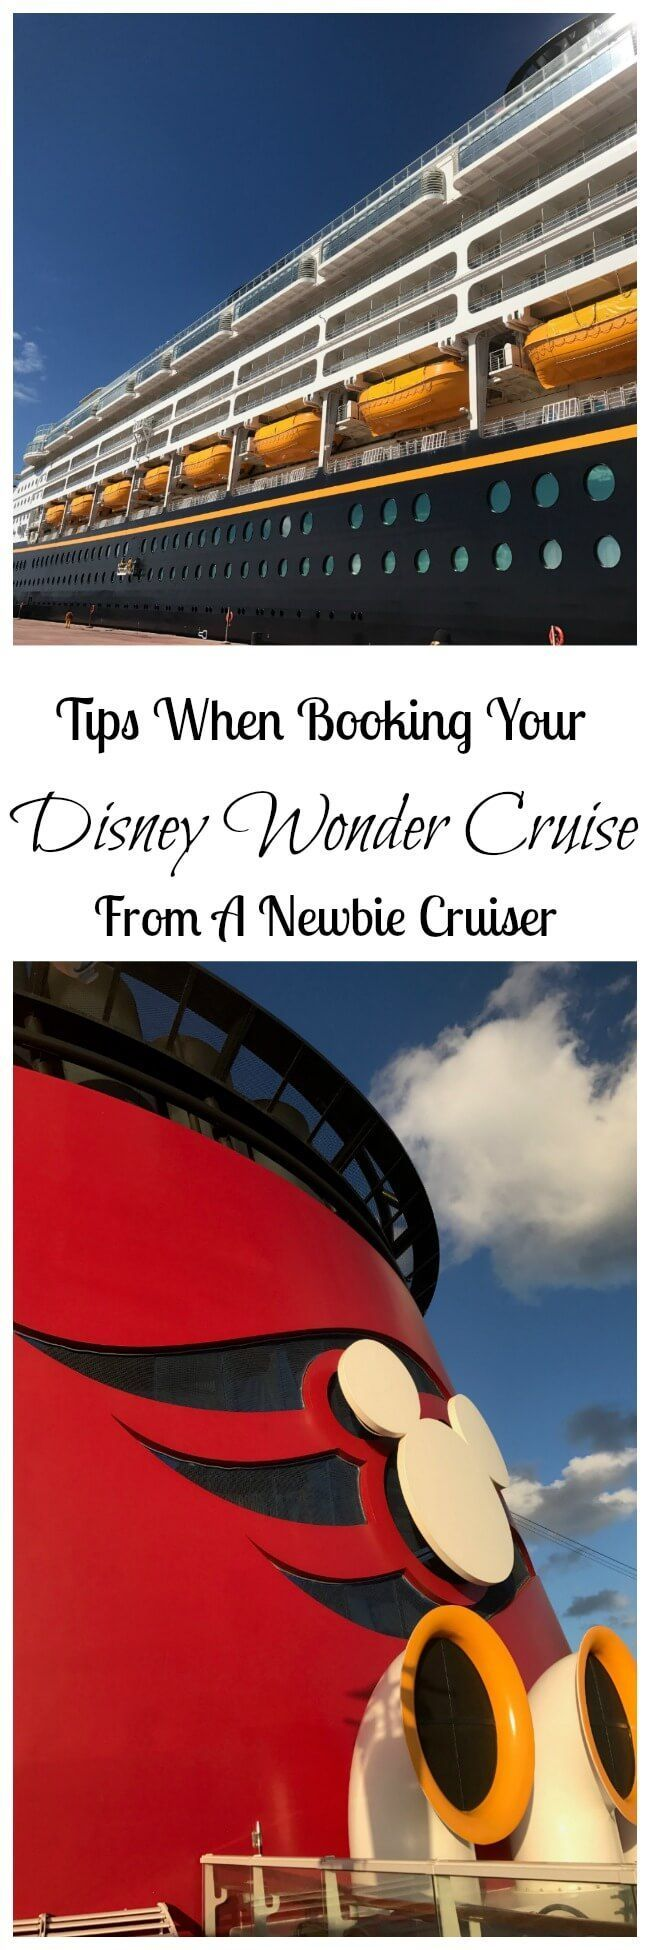 Tips When Booking Your Disney Wonder Cruise From A Newbie Cruiser - Local Mom Scoop